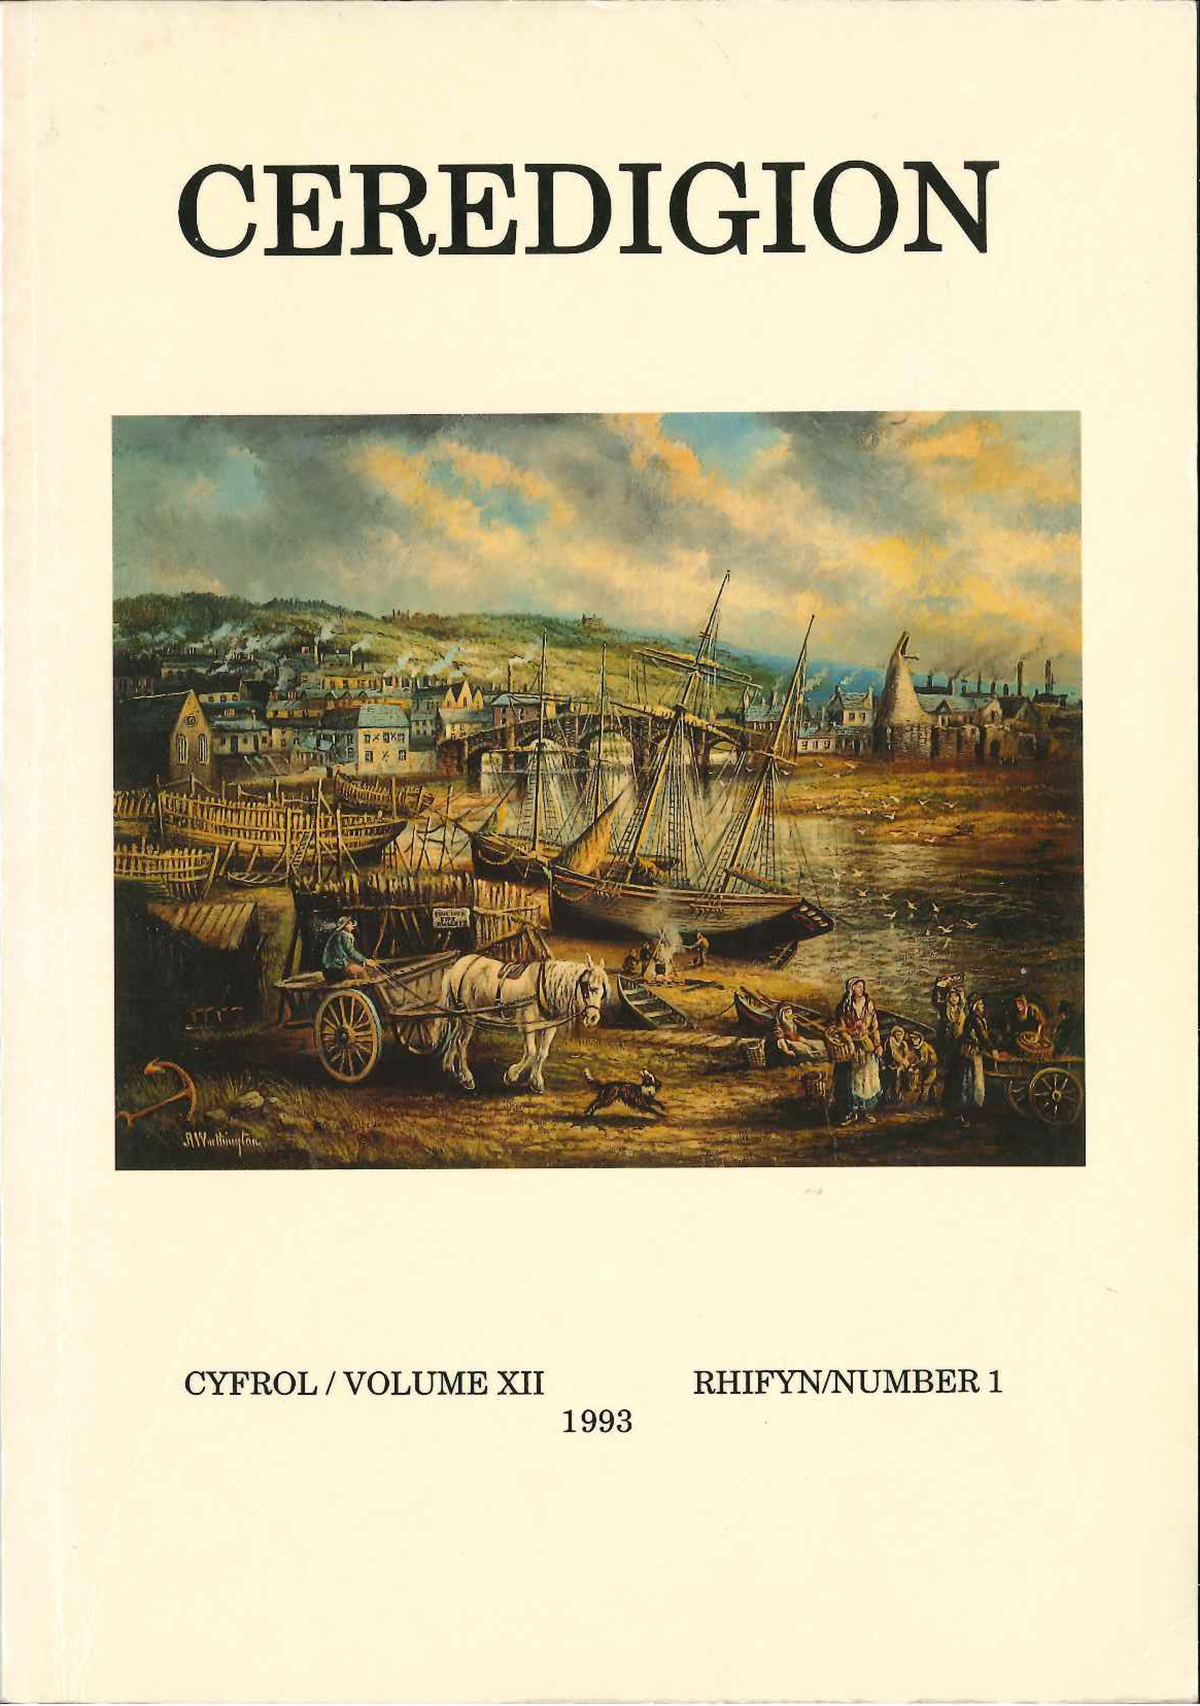 Ceredigion Journal of the Ceredigion Antiquarian Society Vol XII, No I 1993 - ISBN 0069 2263